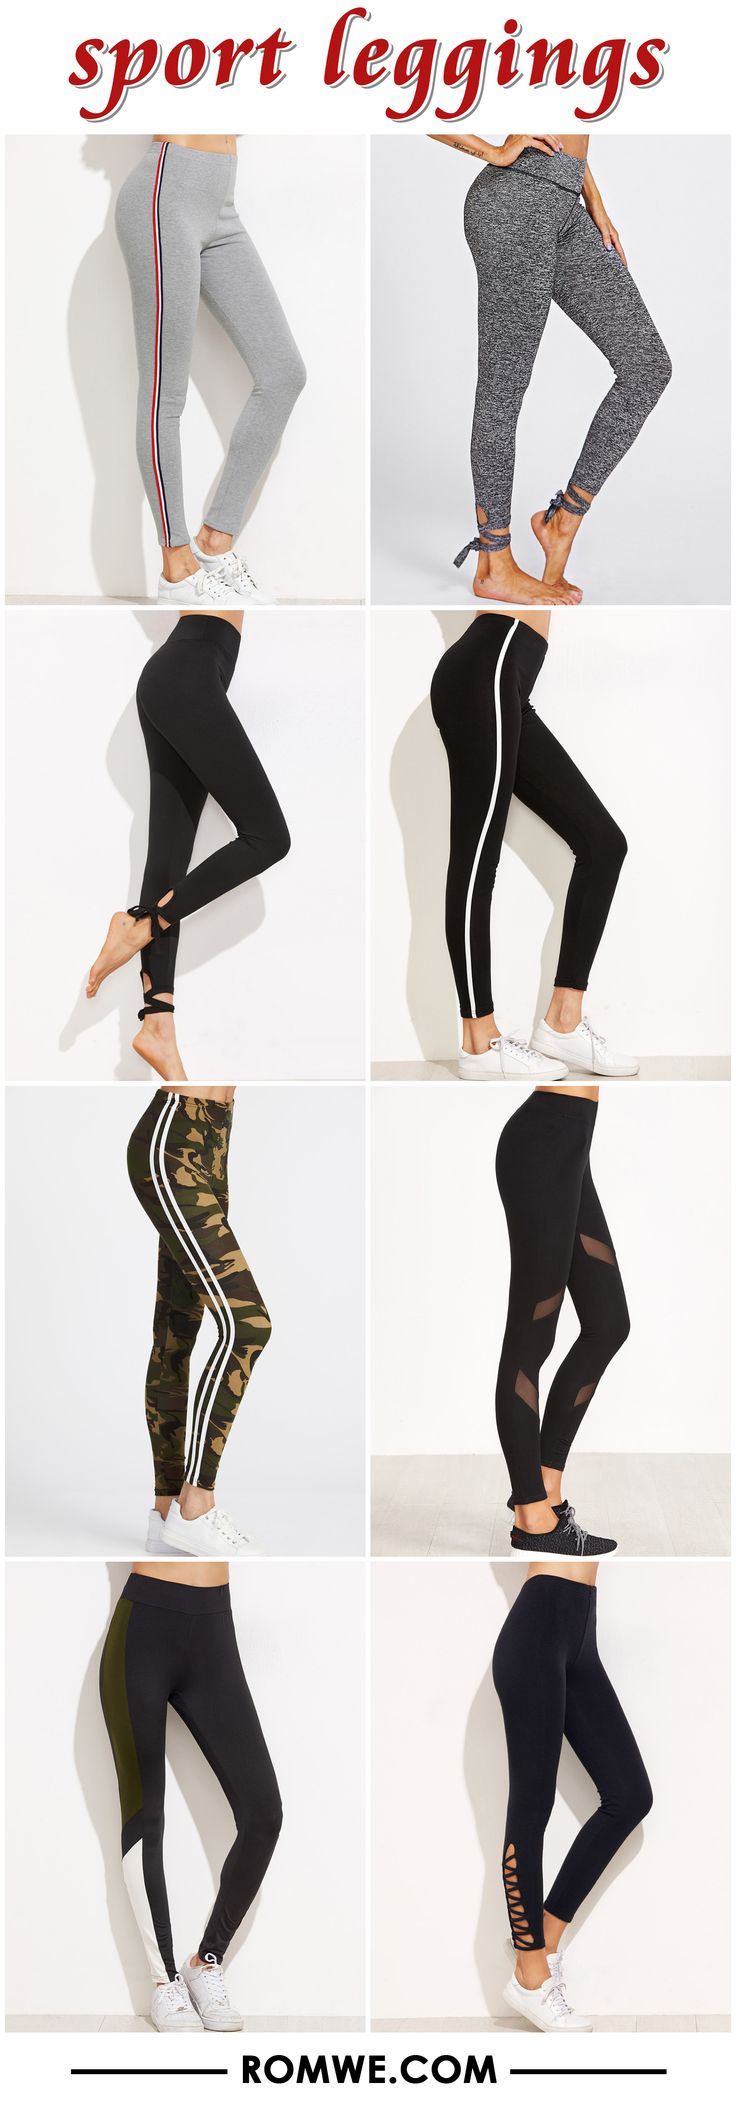 sport leggings from romwe.com